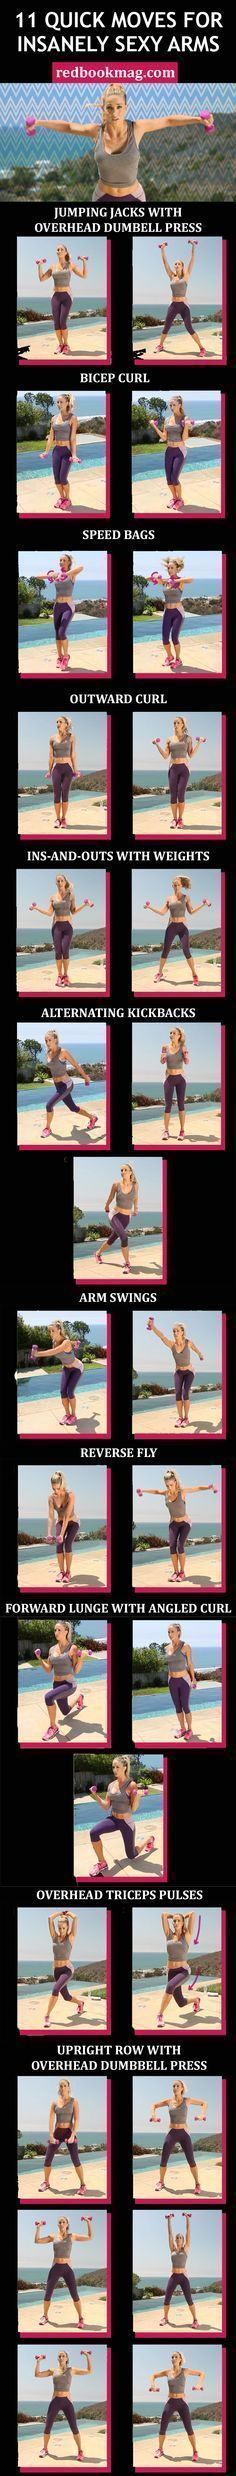 SEXY ARM WORKOUT FOR WOMEN: Grab a set of 2- to 3-pound dumbbells, and do 20 to 30 reps of each move in quick succession to tone your arms, back, chest, and legs. Repeat the entire sequence two to three times to get toned arms fast! Click through for the  http://amzn.to/2rJPSll